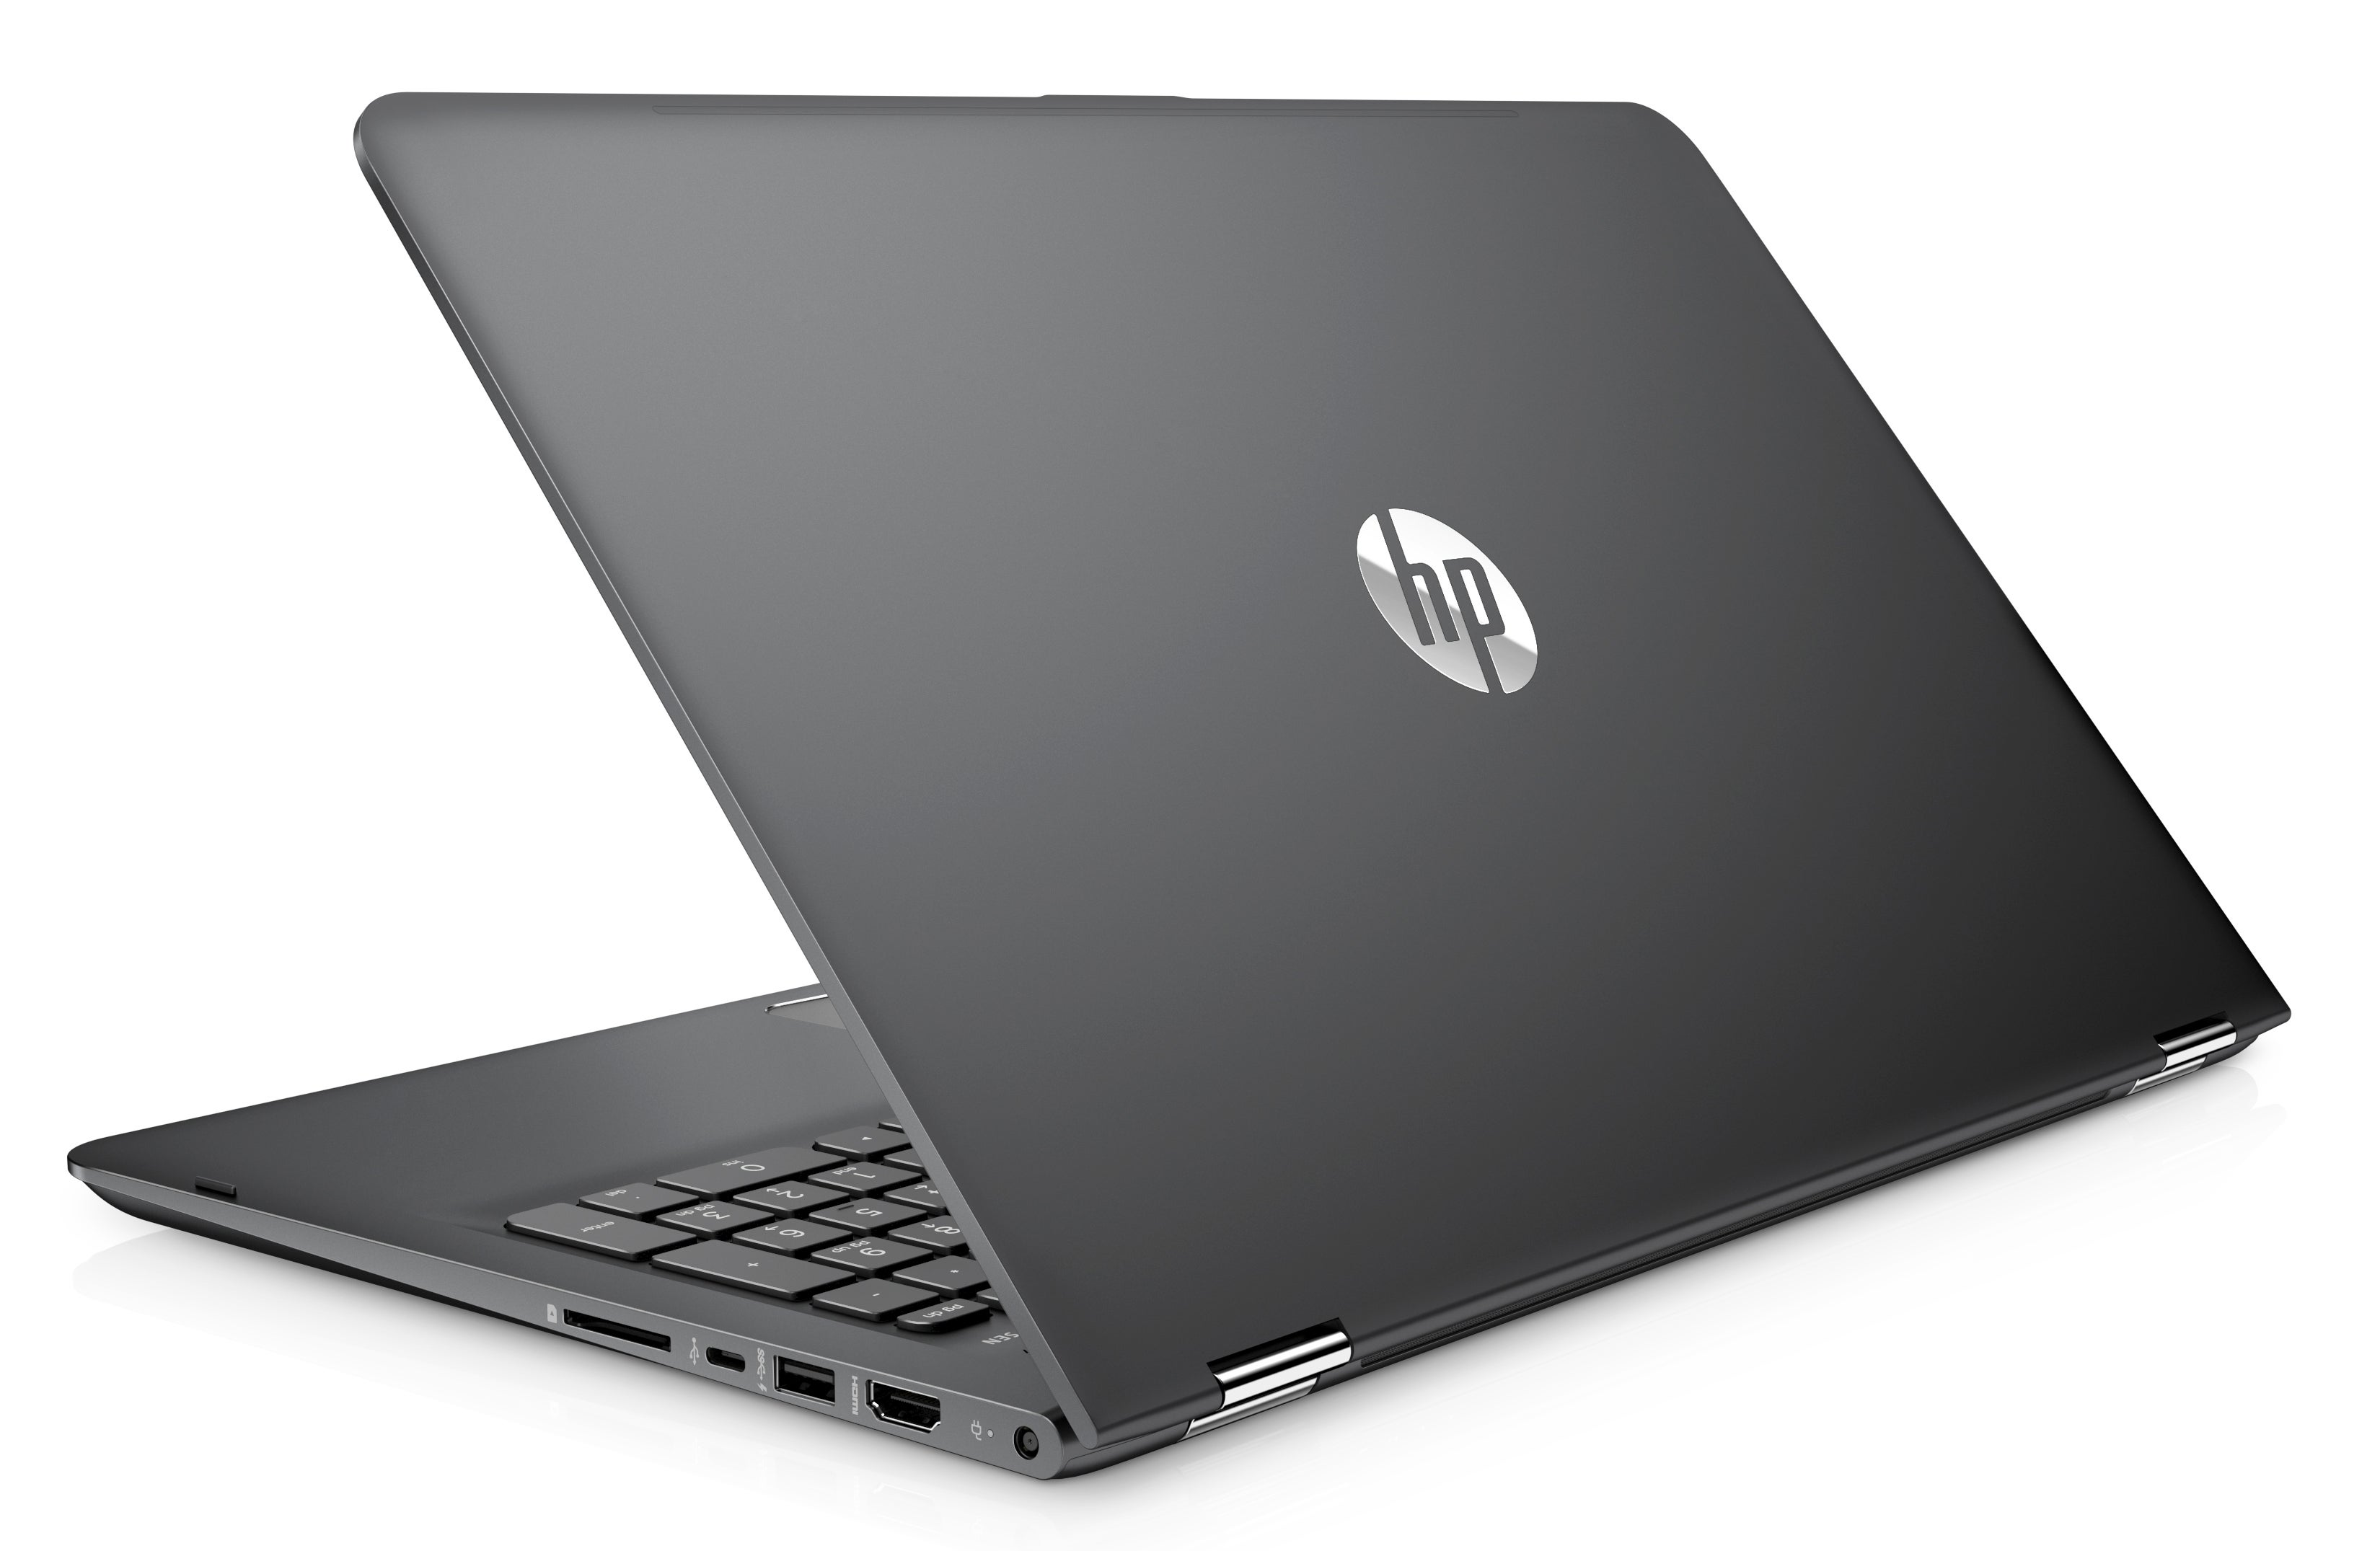 How To Use Bluetooth On My Hp Laptop